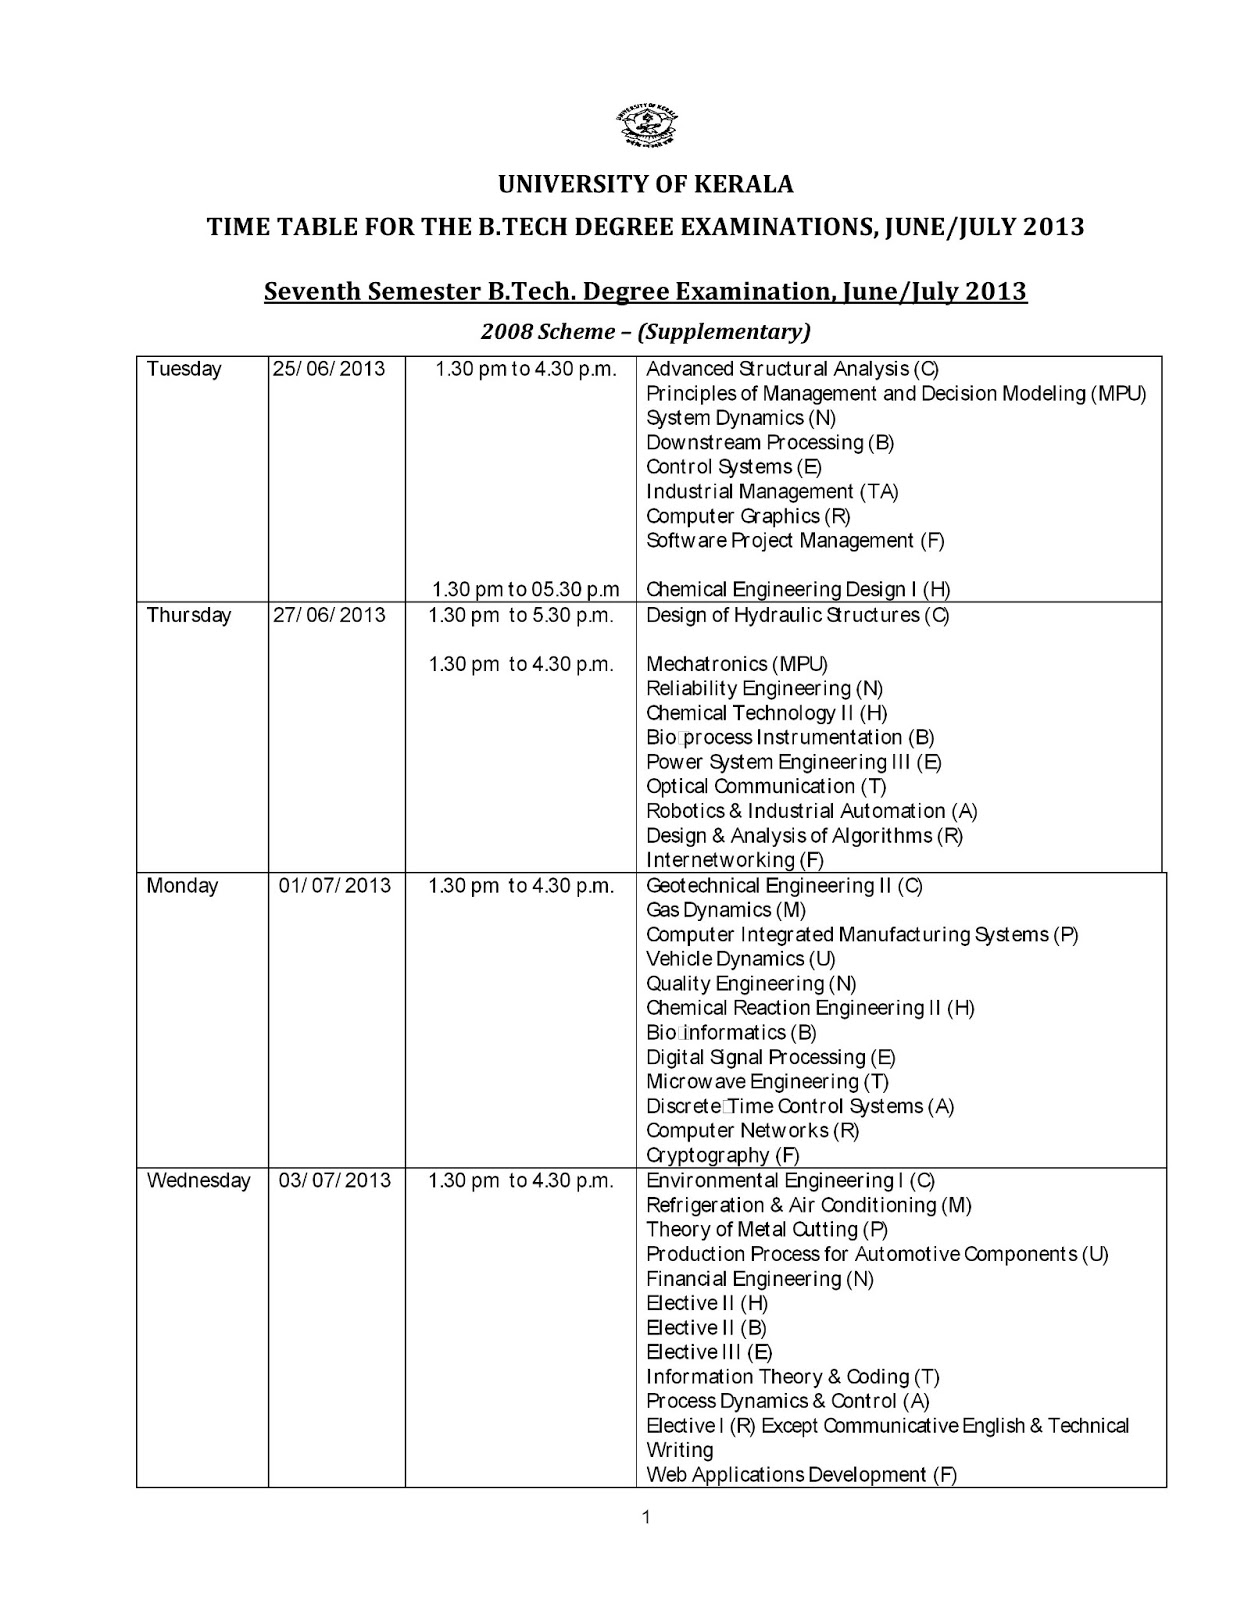 s7 syllabus Cochin university of science and technology – btech degree syllabus (2012 scheme).